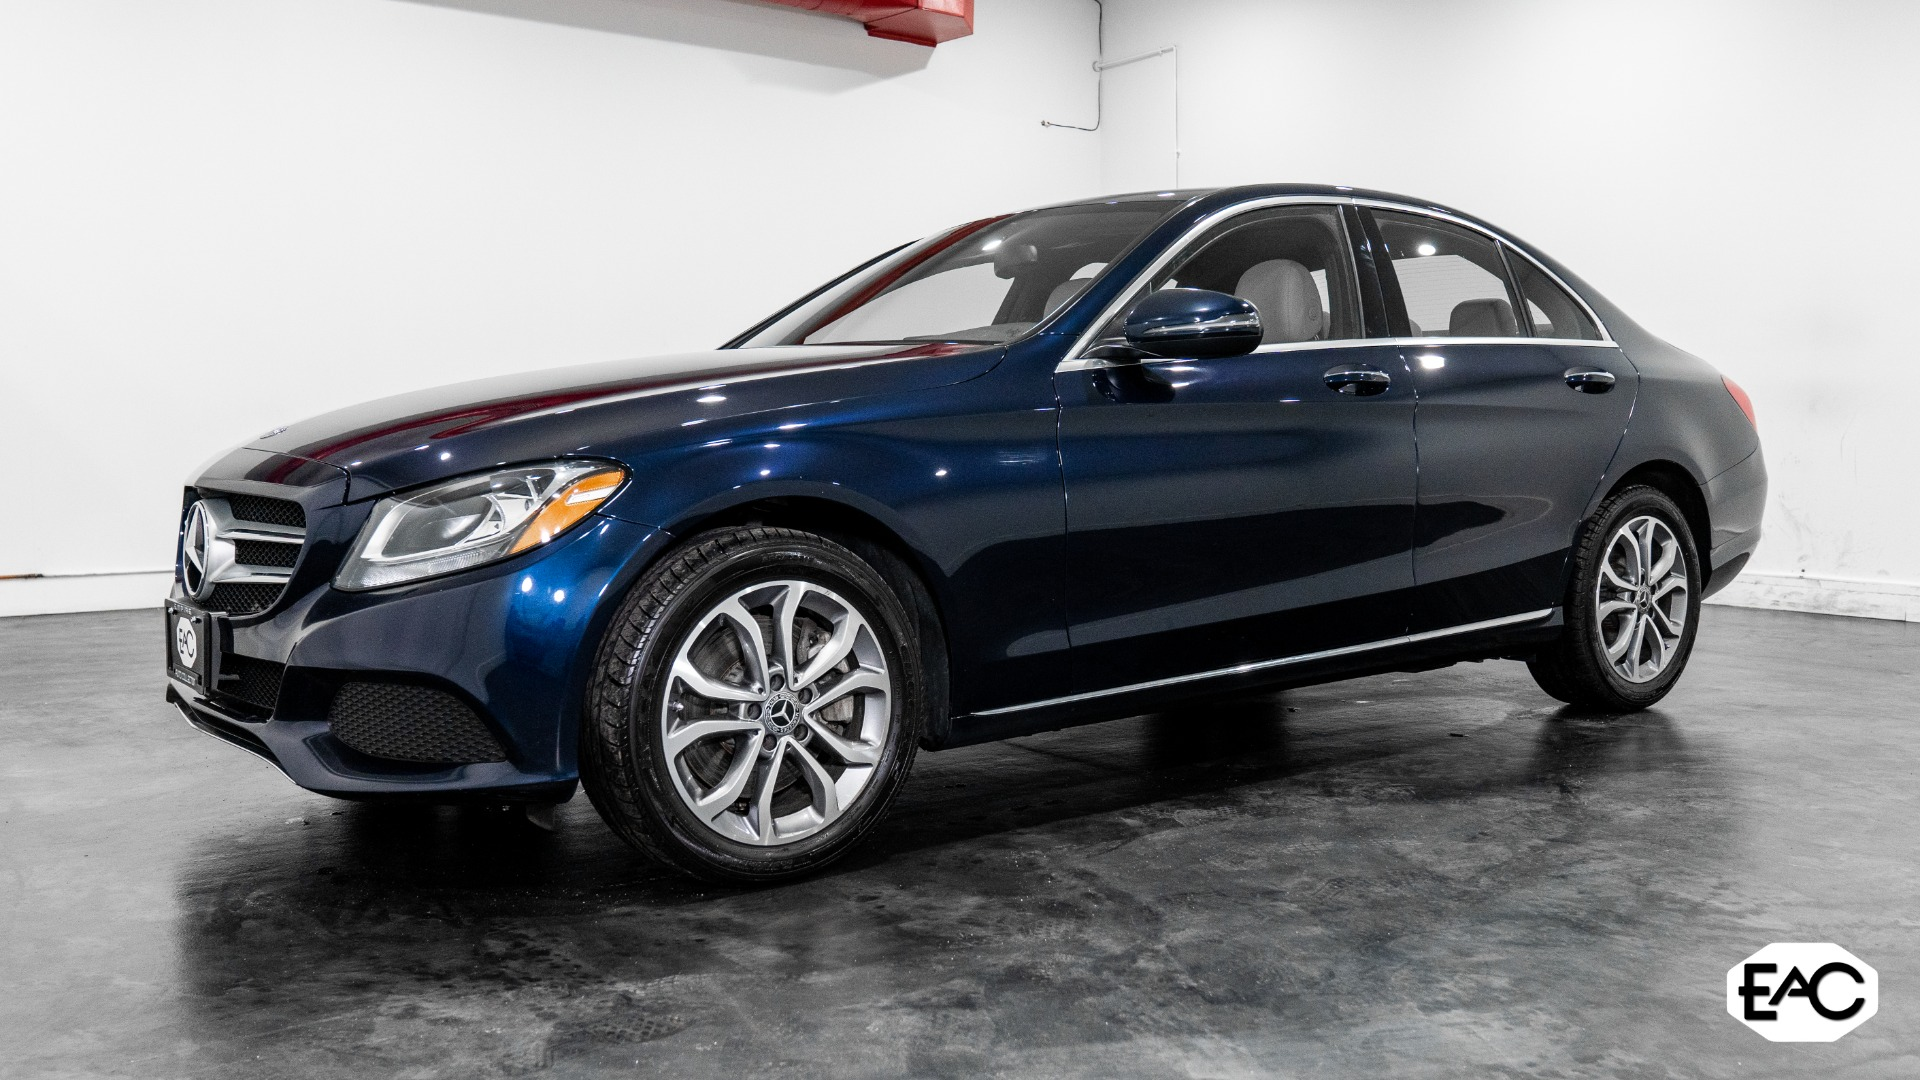 Used 2018 Mercedes-Benz C-Class C 300 4MATIC for sale $26,490 at Empire Auto Collection in Warren MI 48091 1